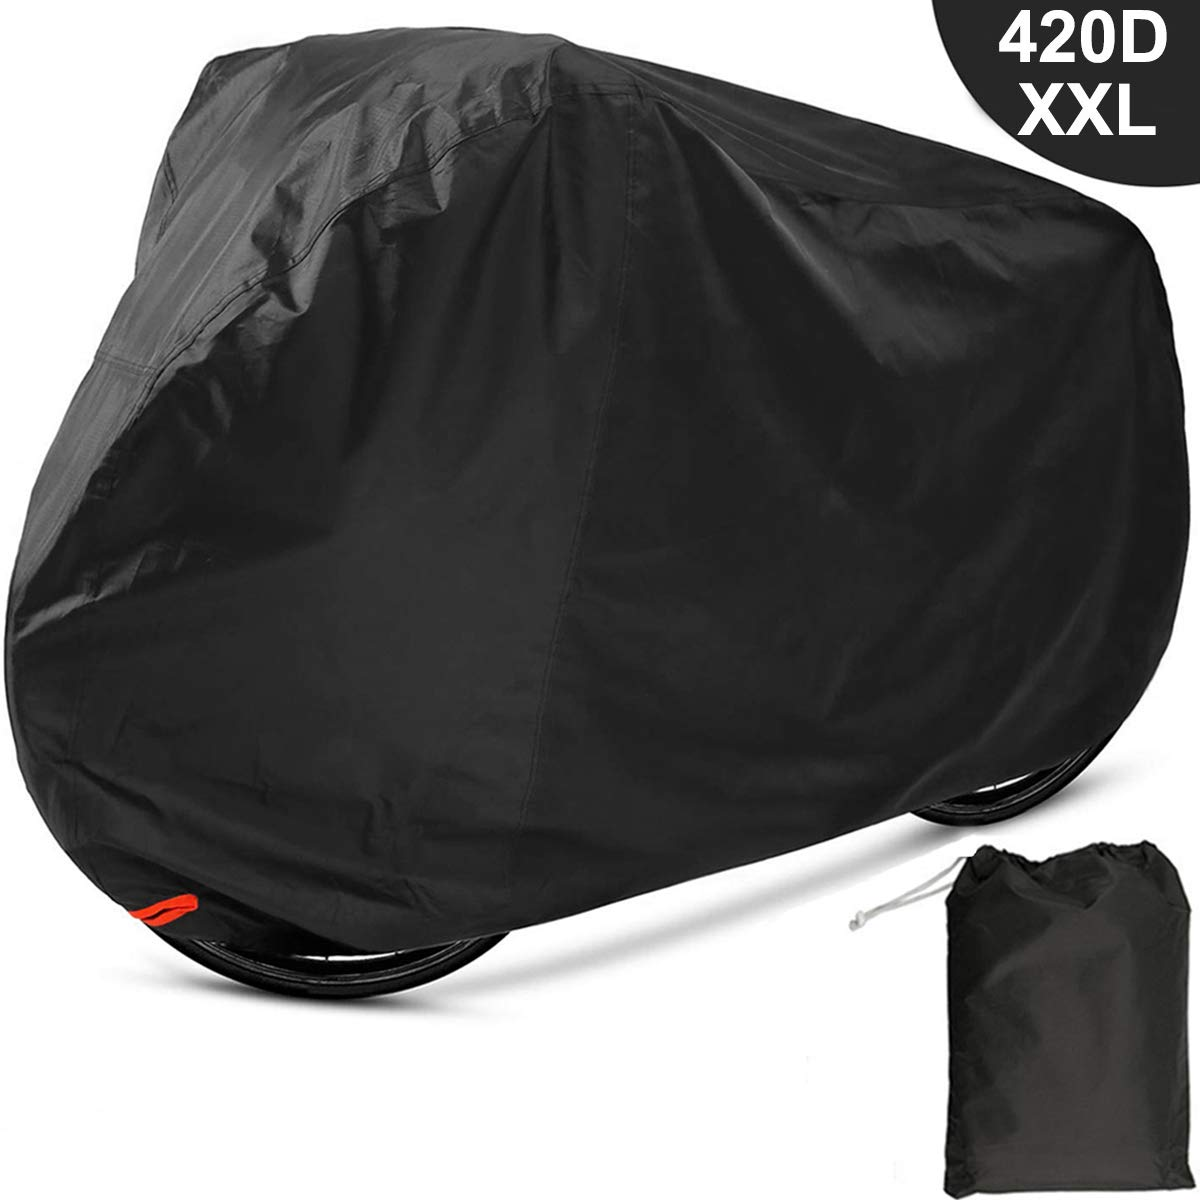 EUGO Bike Cover 2 or 3 Bikes Outdoor Waterproof Bicycle Motorcycle Covers XXL 420D Oxford Fabric Rain Sun UV Dust Wind Proof Mountain Road Electric Bike